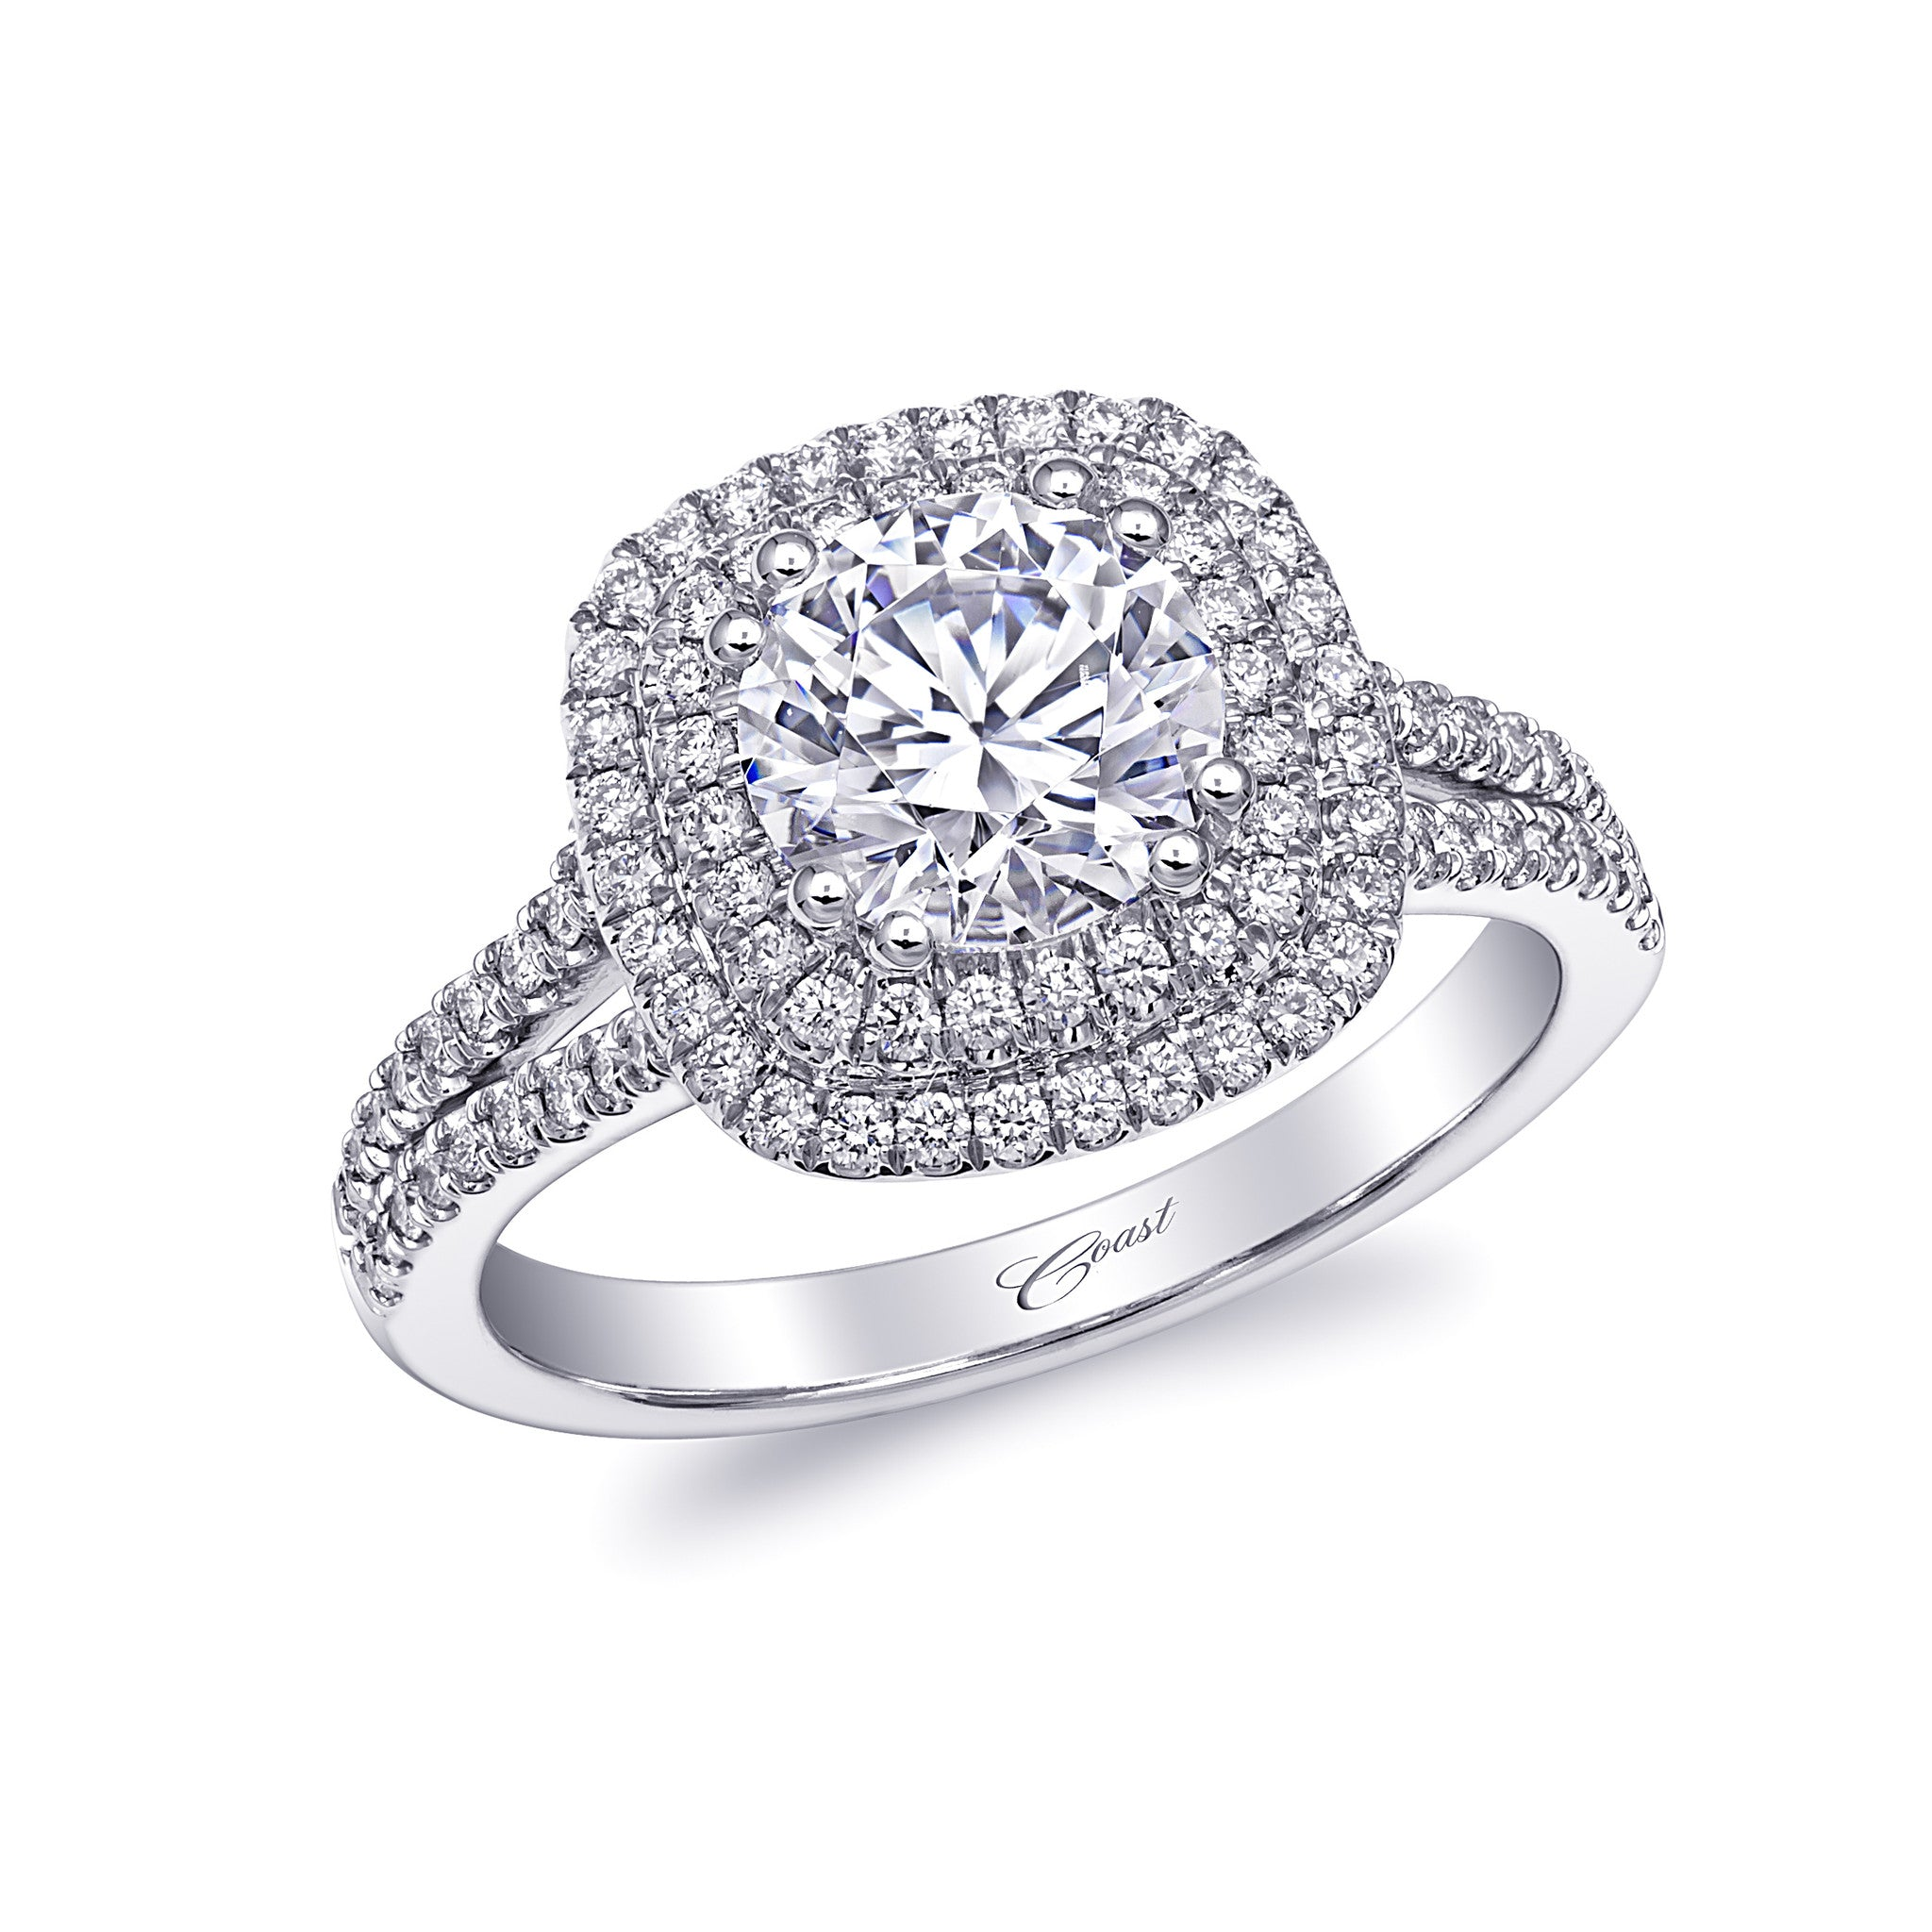 featuring banner of gabriel overall setting and engagement accent ring two shine co wedding double that rings magnifies the rows intensely stone frame center diamonds halo